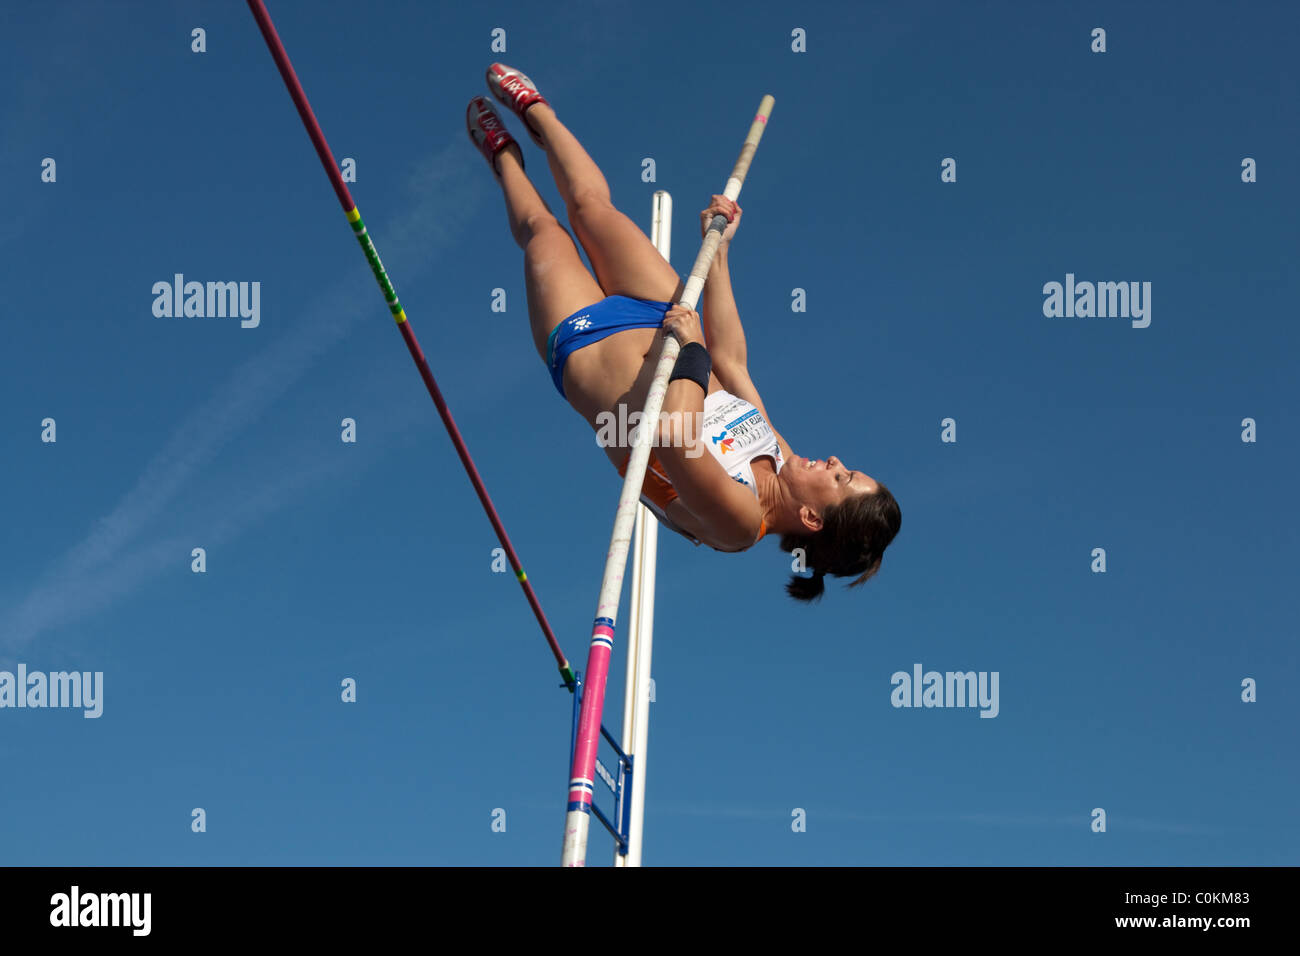 pole vault athlete female jumping sport outdoor Athletics competition Championships of Spain, July 3rd 4th 2010 - Stock Image